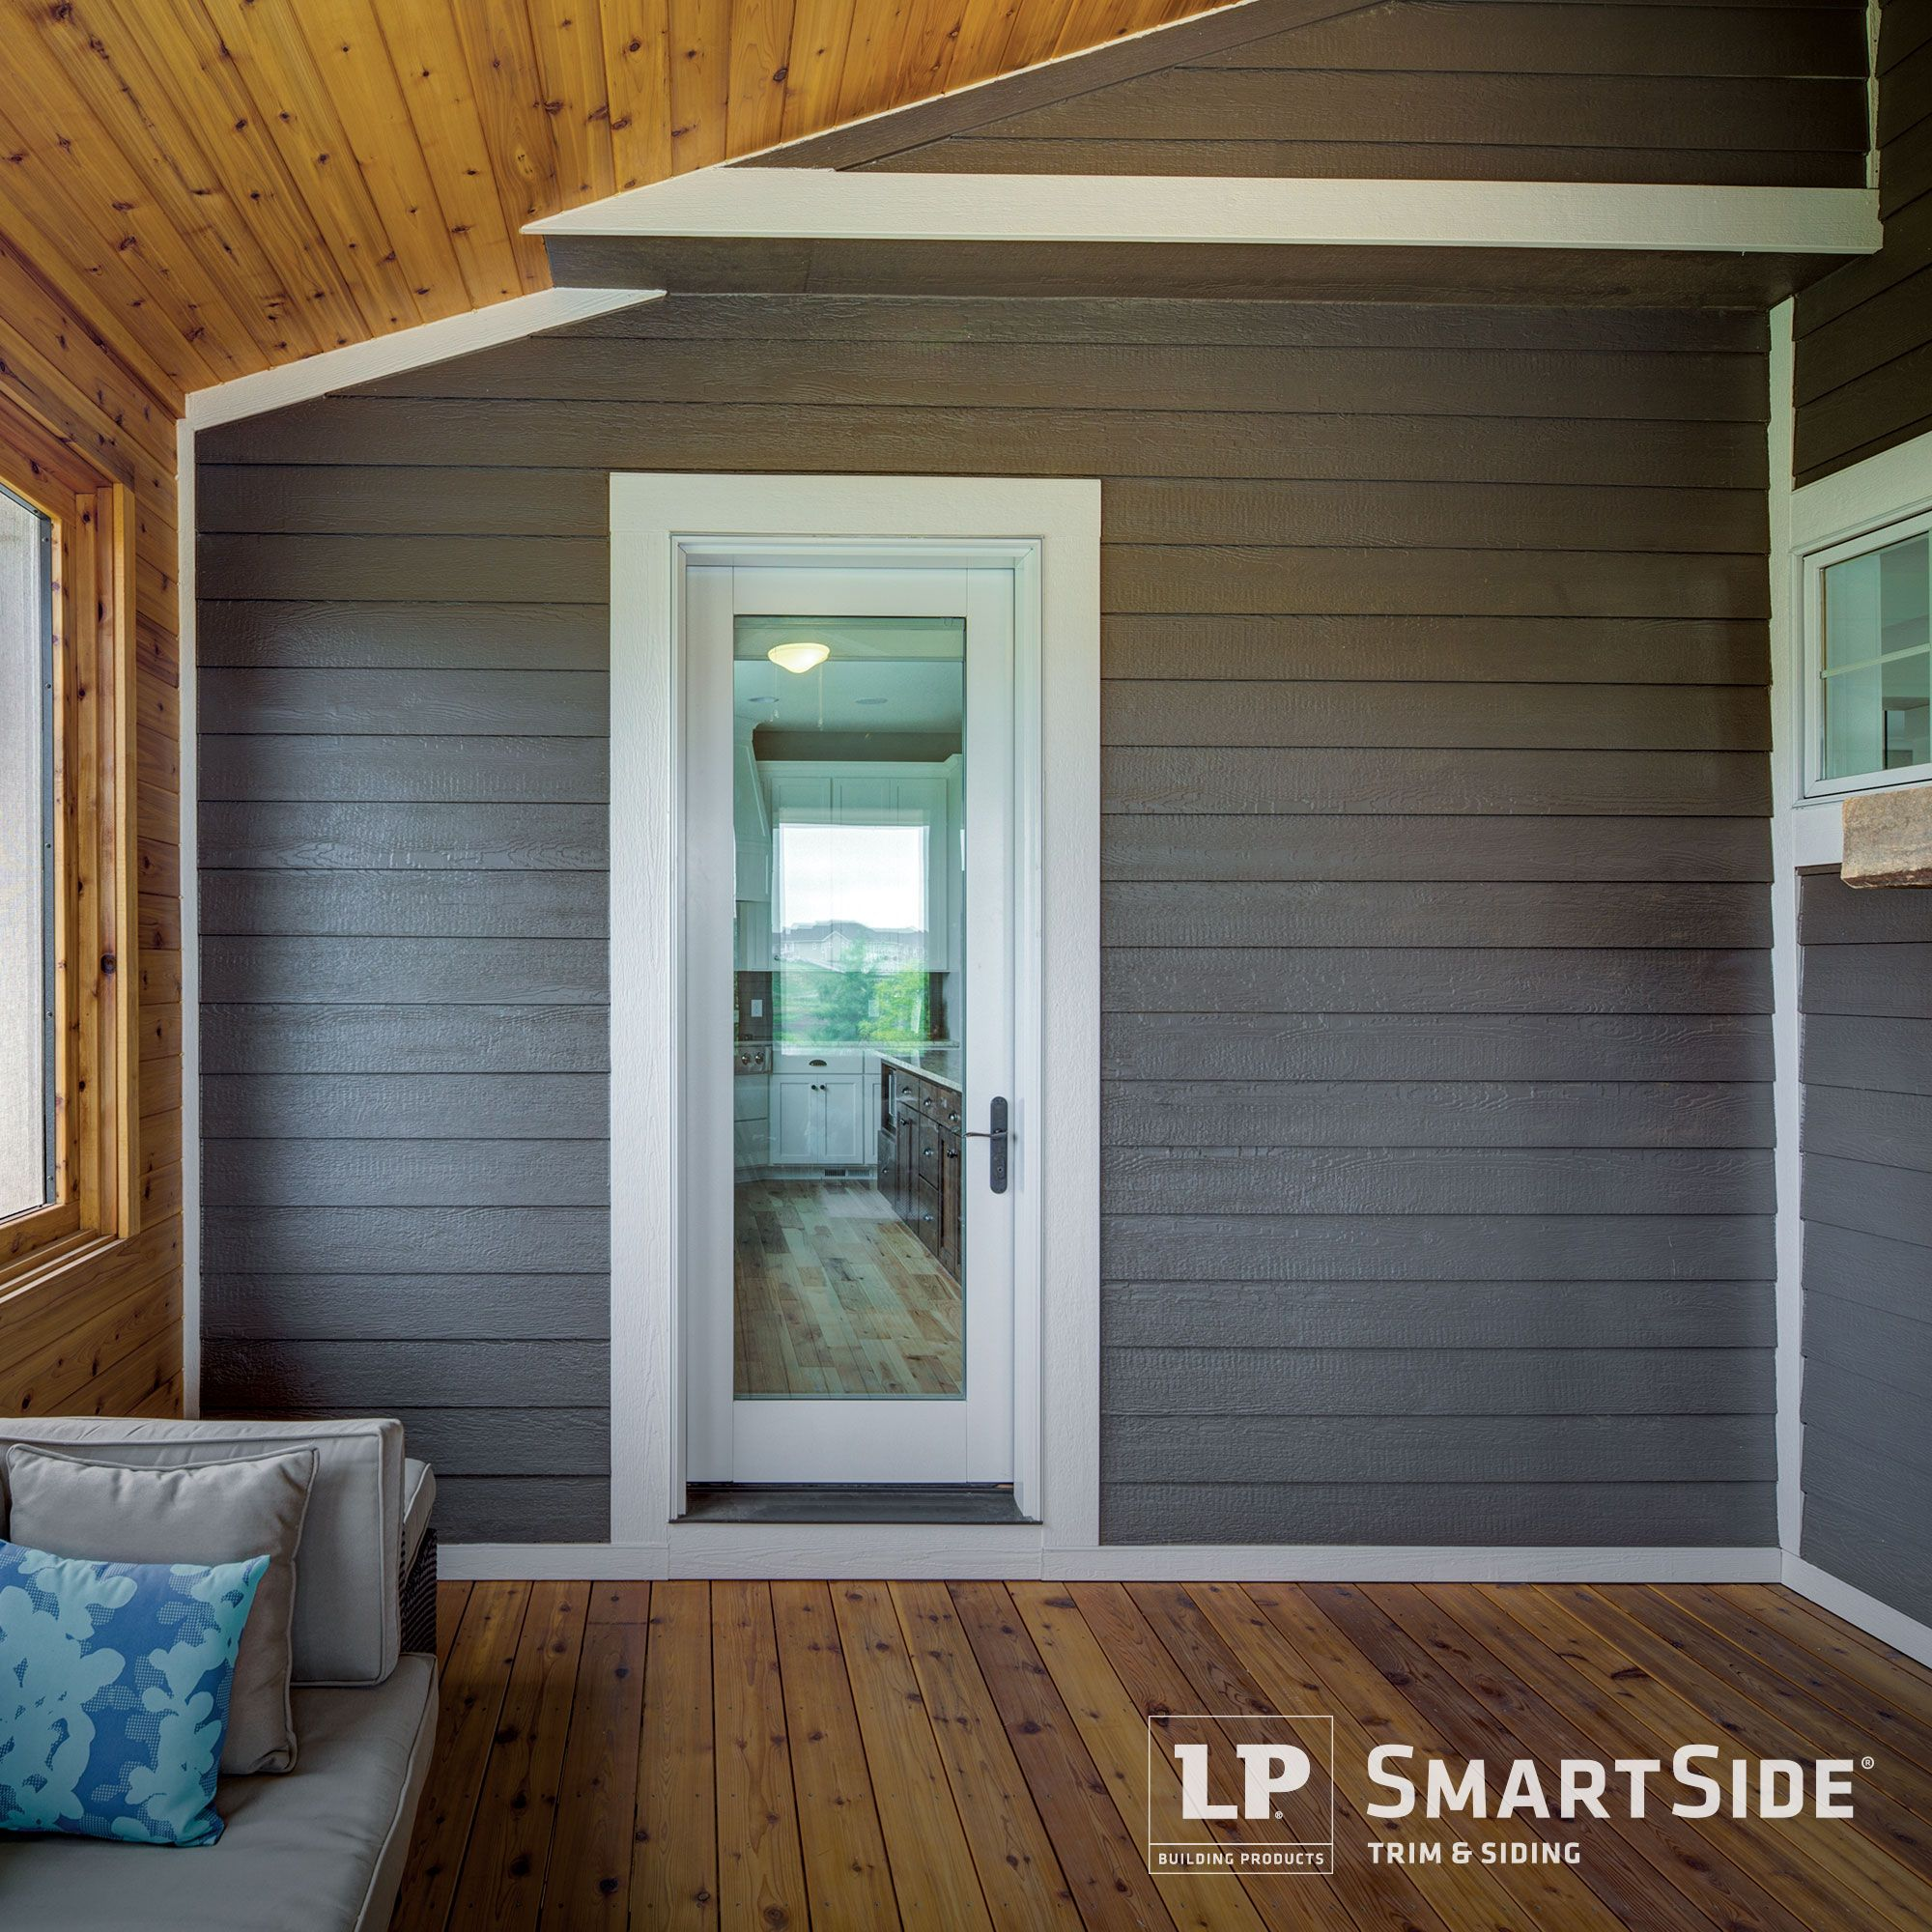 This Porch Outfitted With Lp Smartside Trim And Lap Siding Is Perfect For Cozying Up With A Cup Of Cocoa And A Go Siding Options House Exterior Exterior Siding